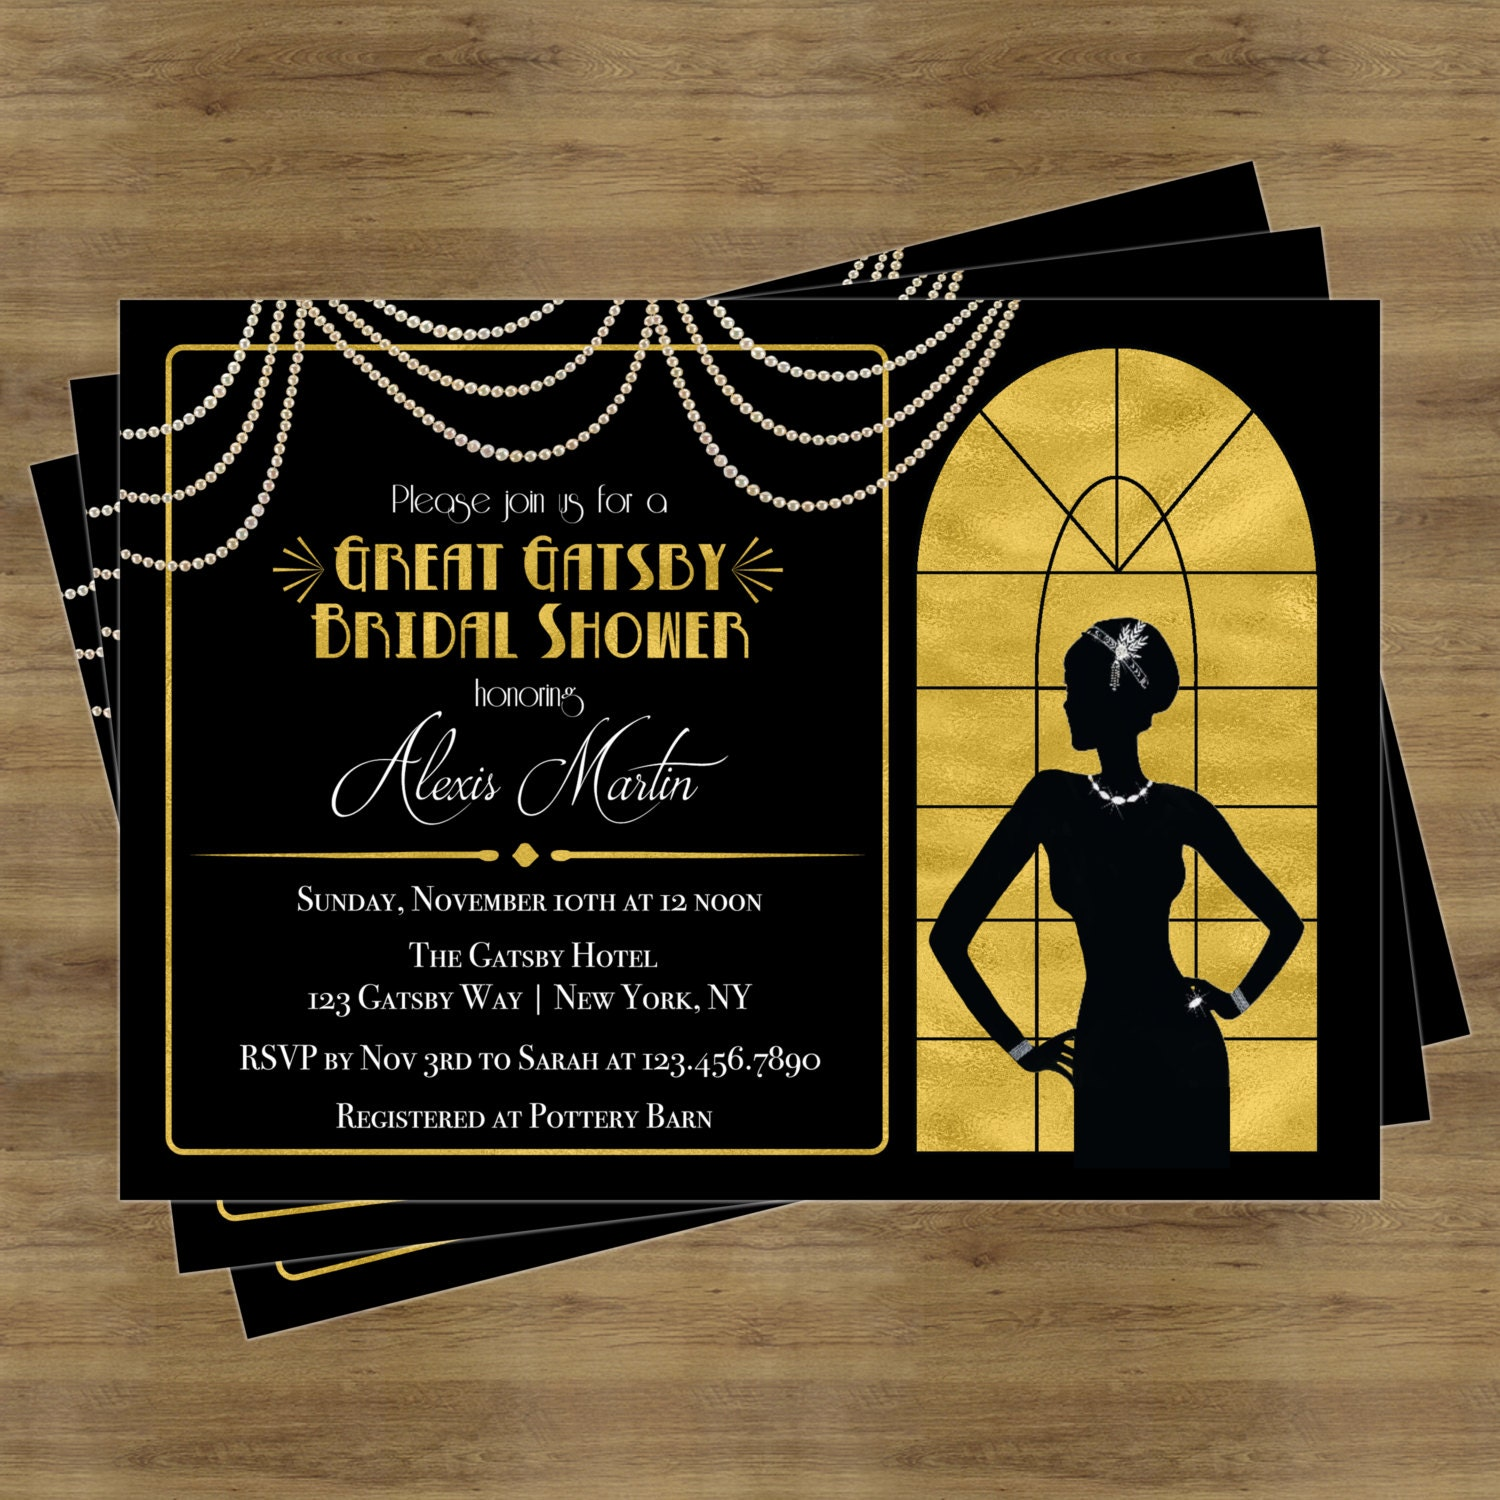 great gatsby invitation gatsby bridal shower invitation. Black Bedroom Furniture Sets. Home Design Ideas